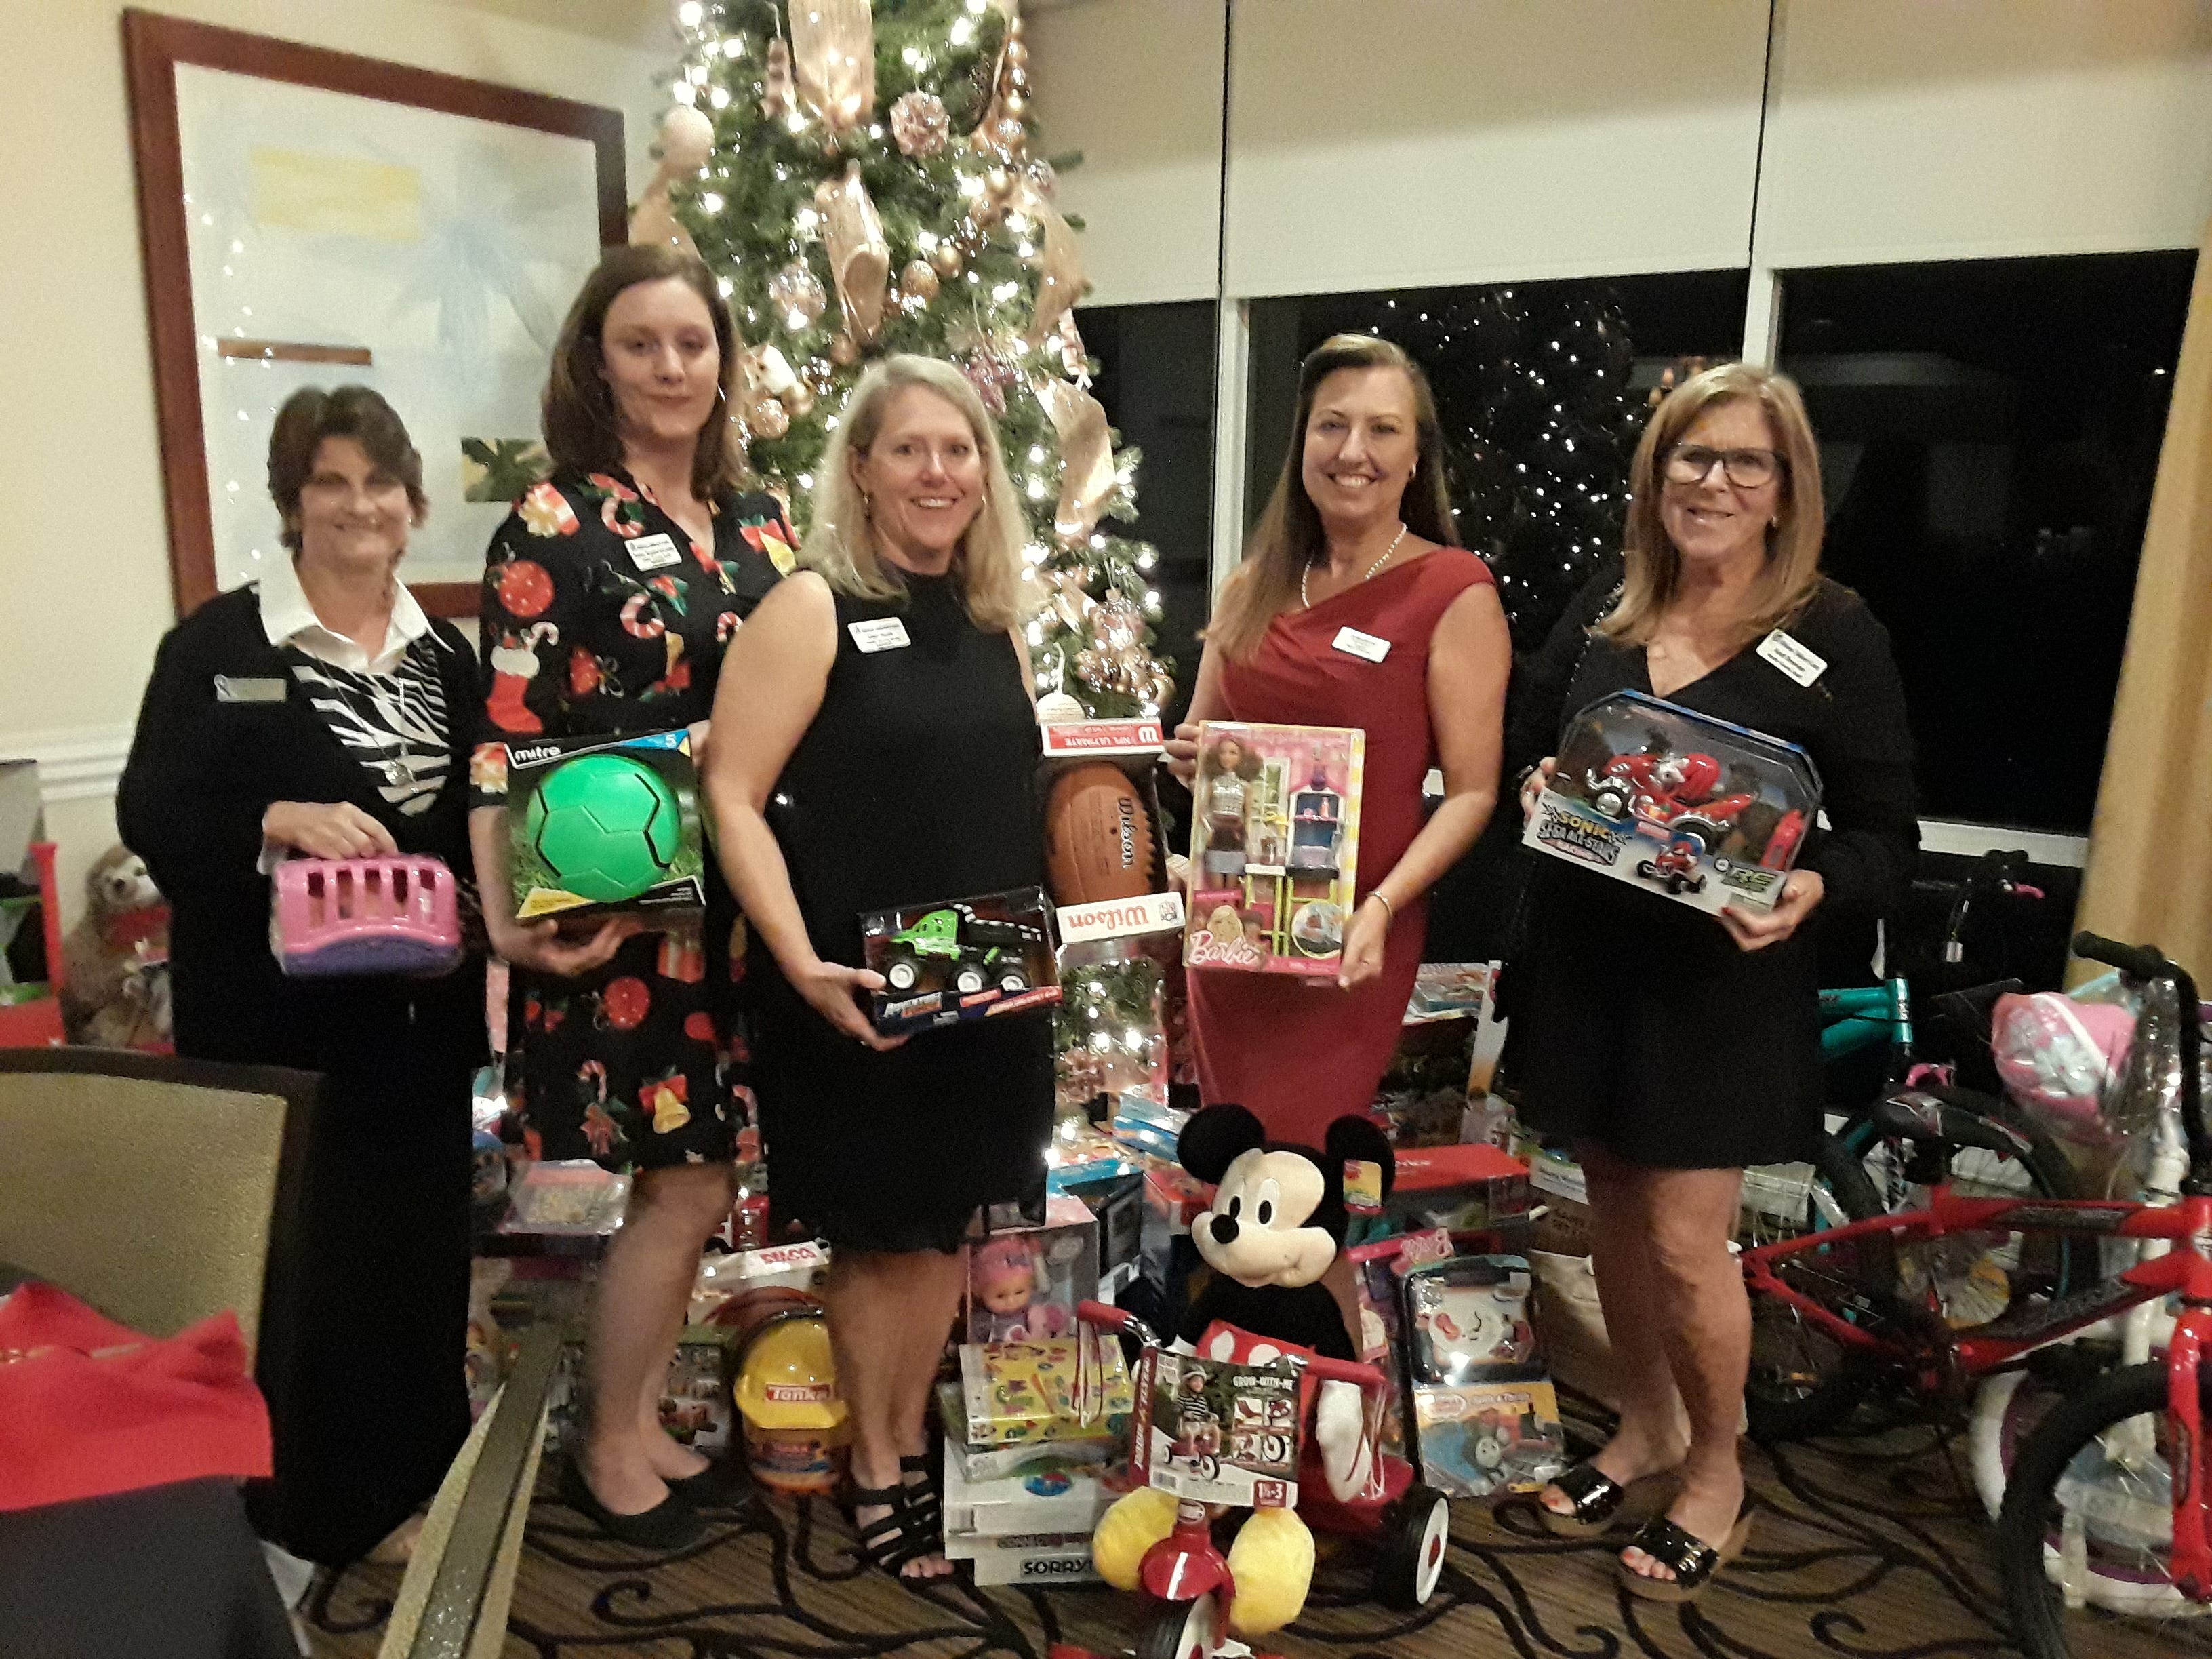 The Saelzer/Atlas Wealth Management Group of Raymond James held its annual holiday party to benefit Hibiscus' children's shelter in Jensen Beach. Santa's Elves attended the festivities and wrapped the gifts for the children. Pictured are, from left, Lori Swift, Ashley Braden-Knowles, Ellen Houts, Heidi Monsour and Andi Brennan.